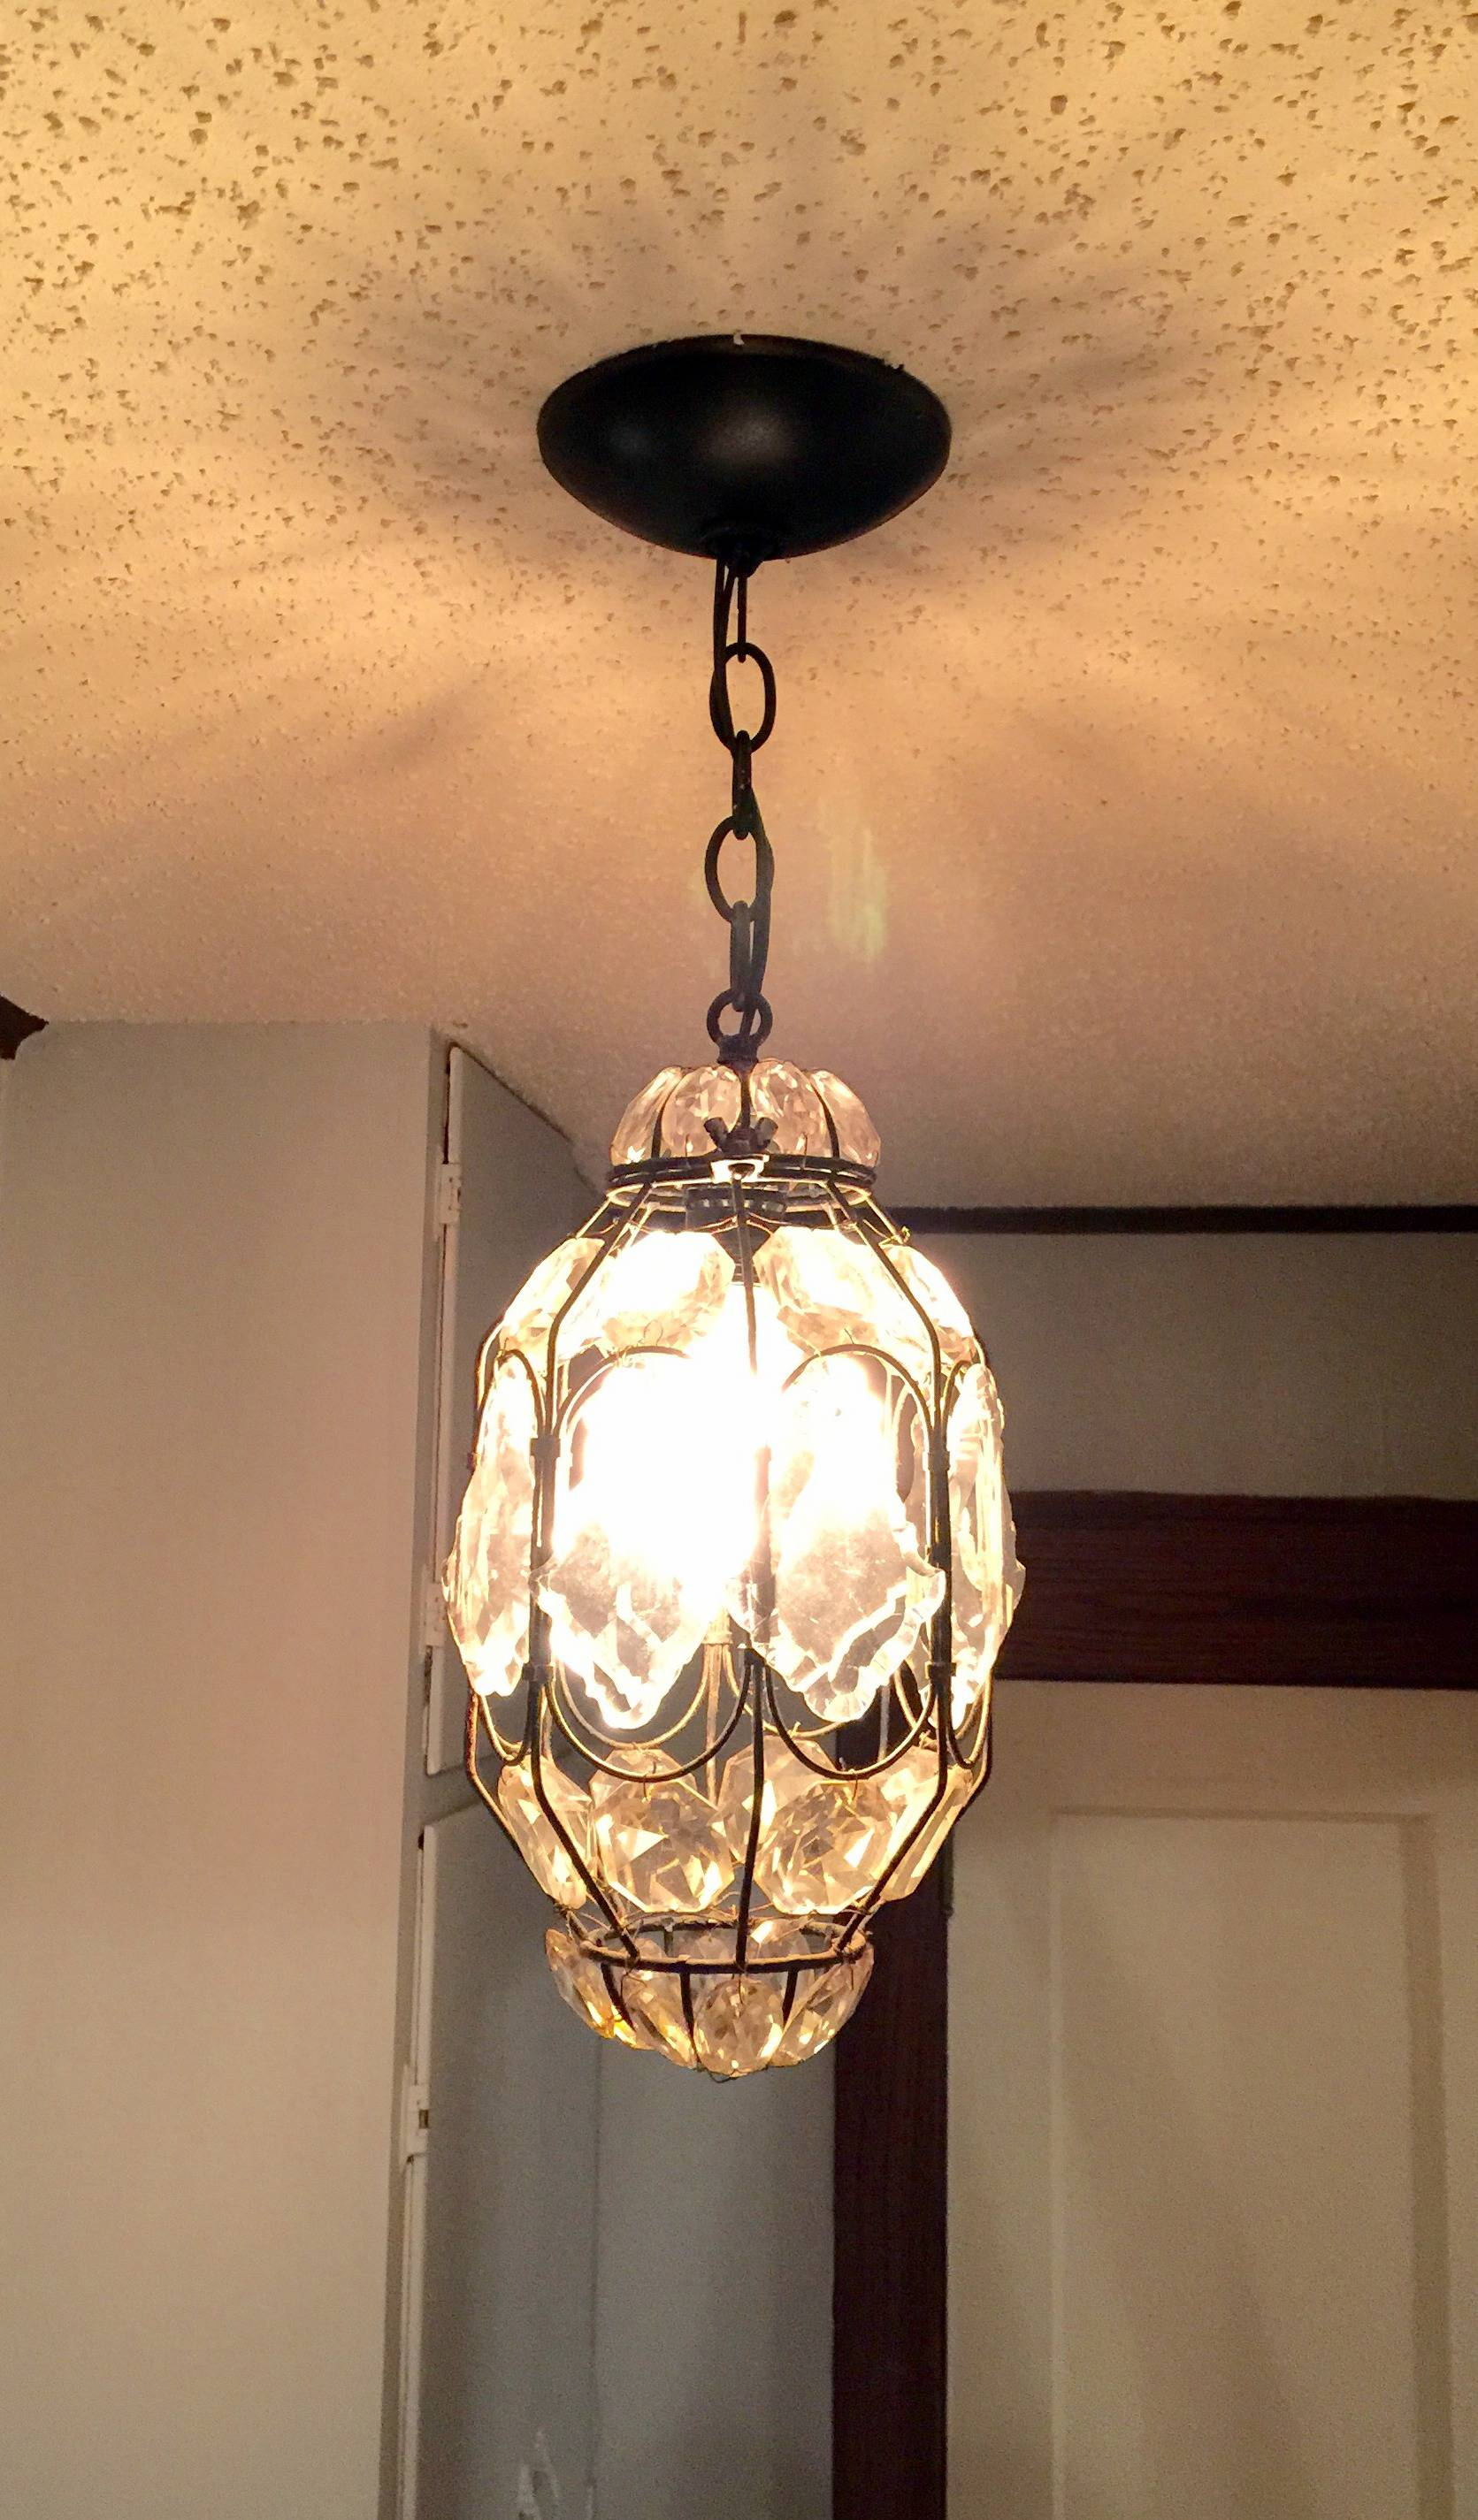 Chandelier replacement in our first home on MostlySewing.com